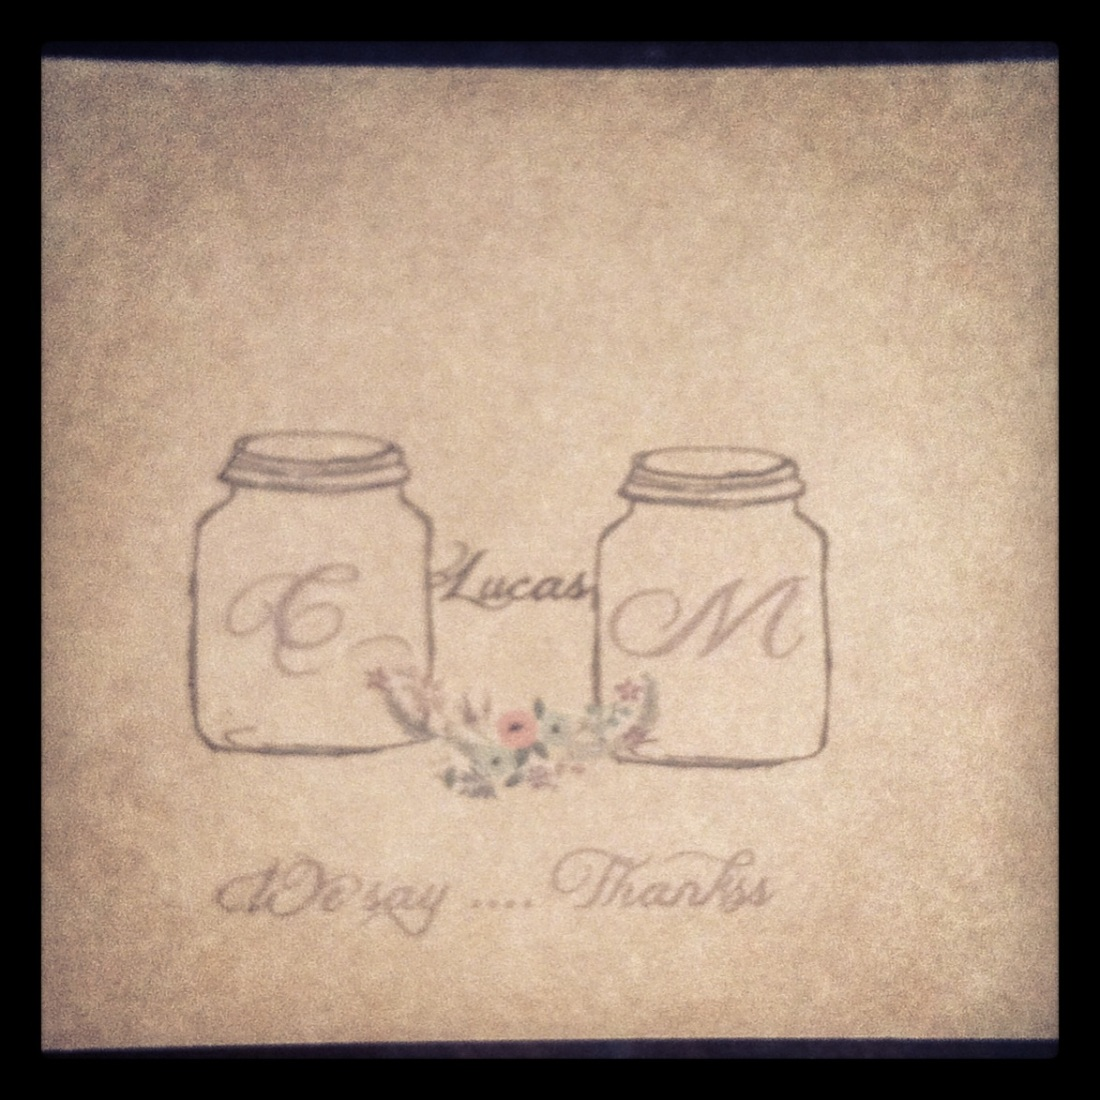 Personalized wedding mason jar thank you cards on Kraft paper